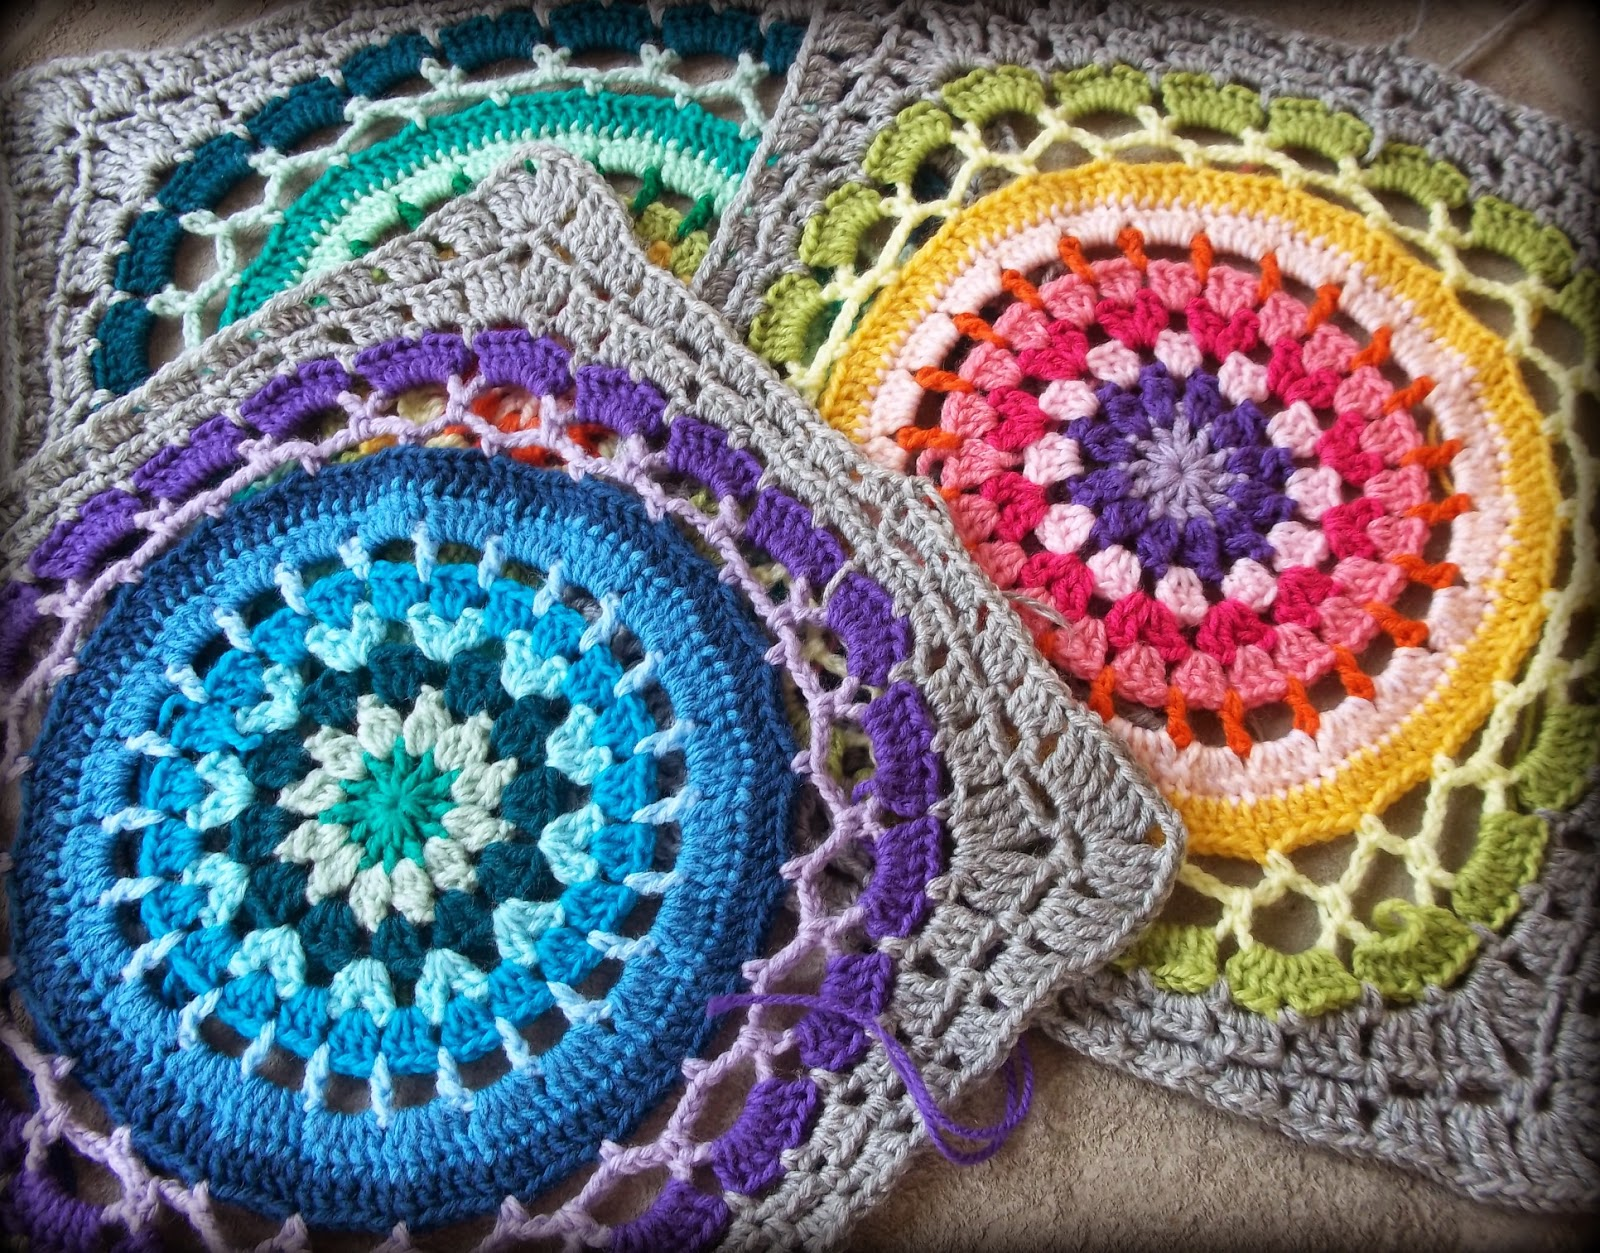 Zooty Owls Crafty Blog: Daisy Centre Mandala Square